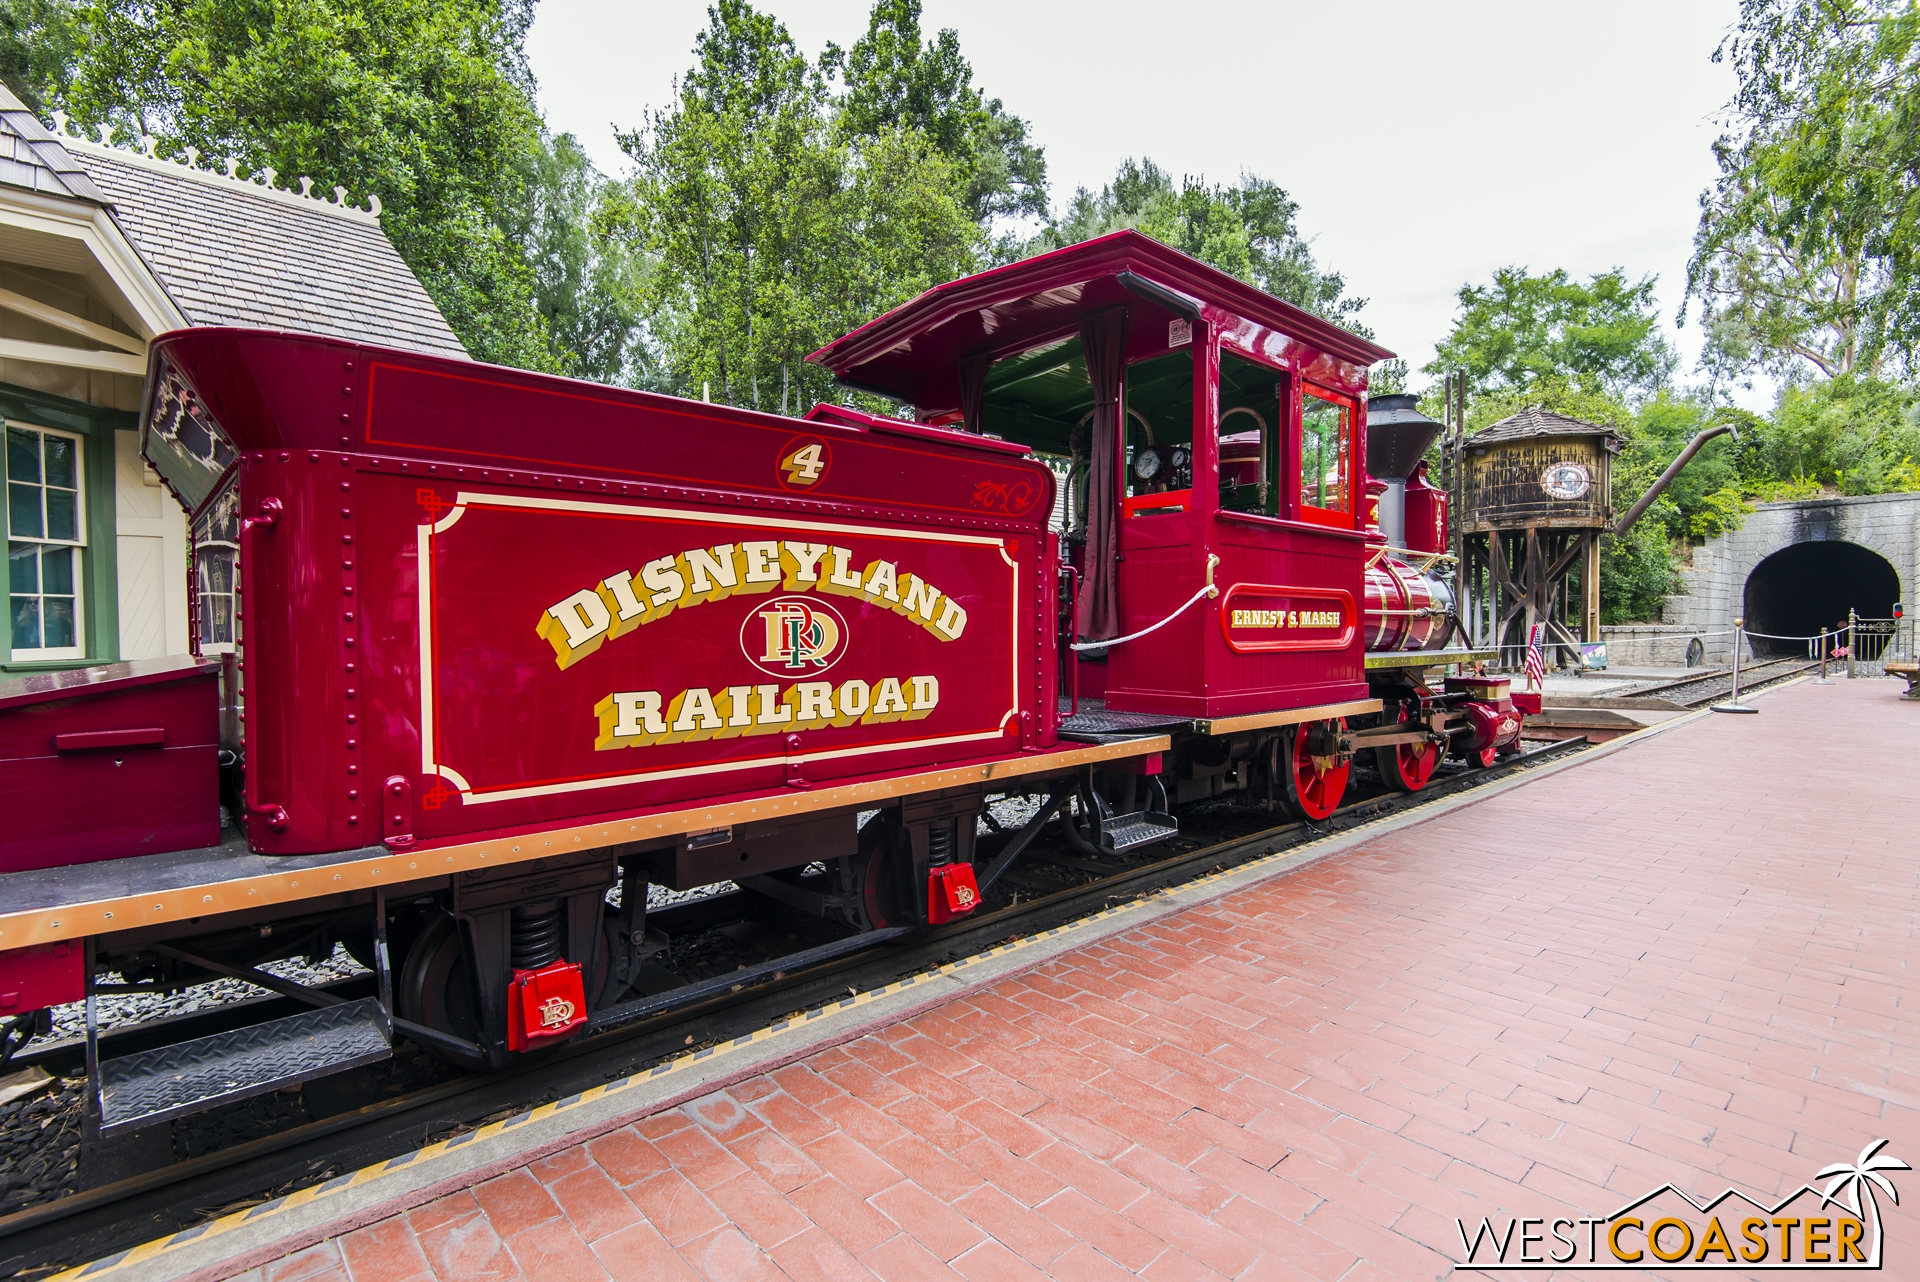 On the day I visited, I saw a few older Disney fans reminiscing of the nostalgia of accessing the old New Orleans Square station (when it was the Frontierland Station, I believe) in their youth.